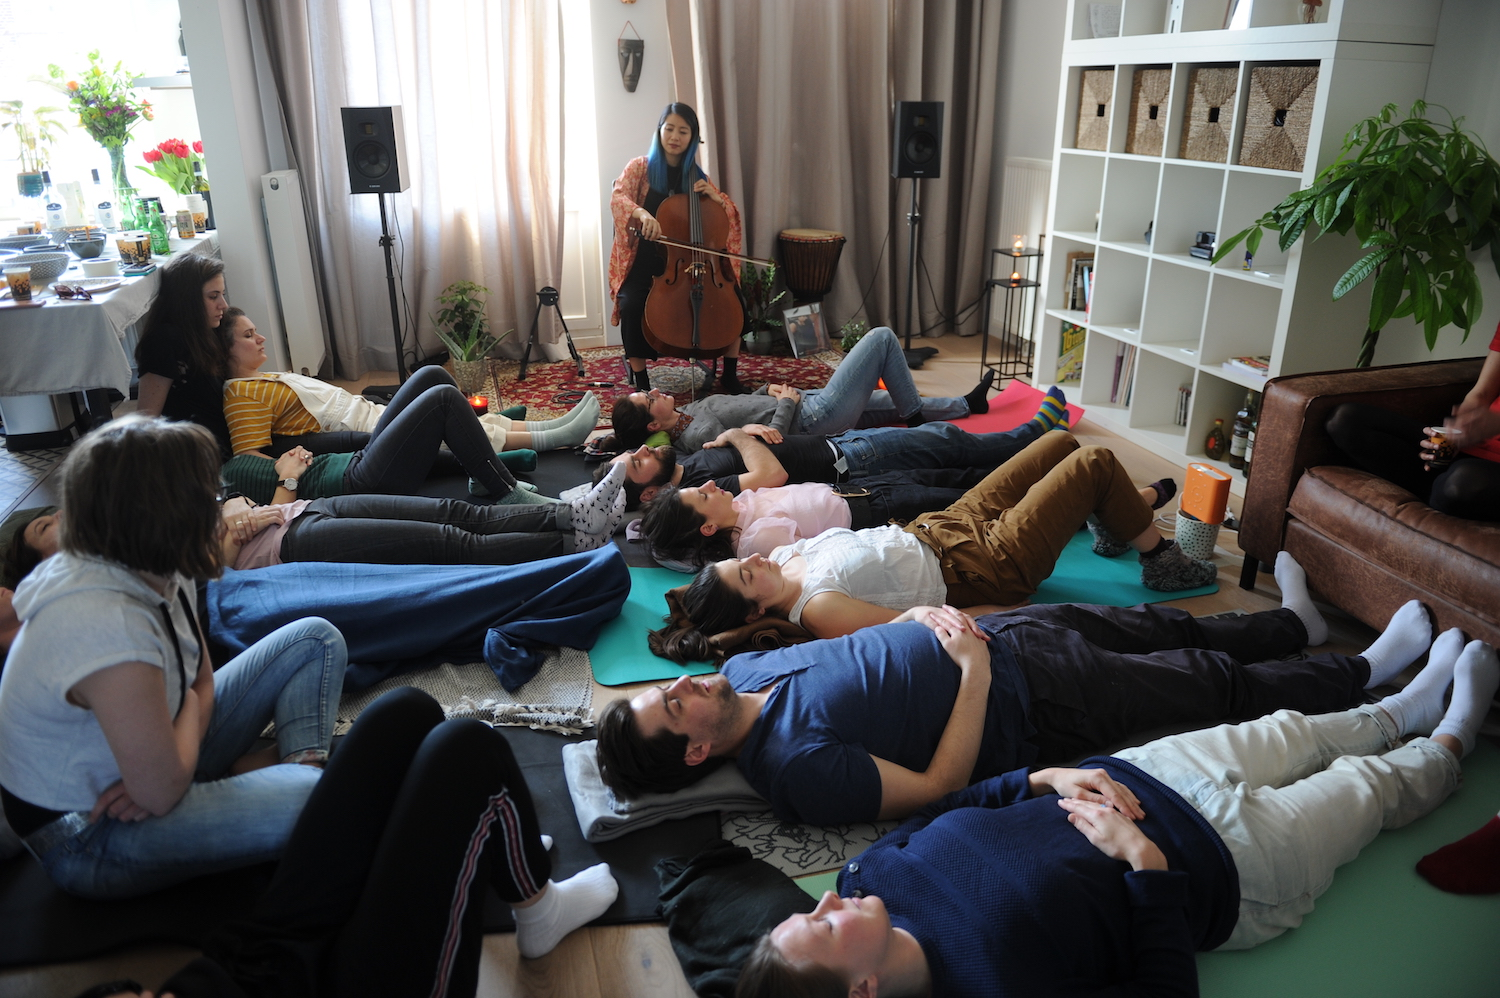 Relax with Live Cello Meditation - an exclusive event by Airbnb